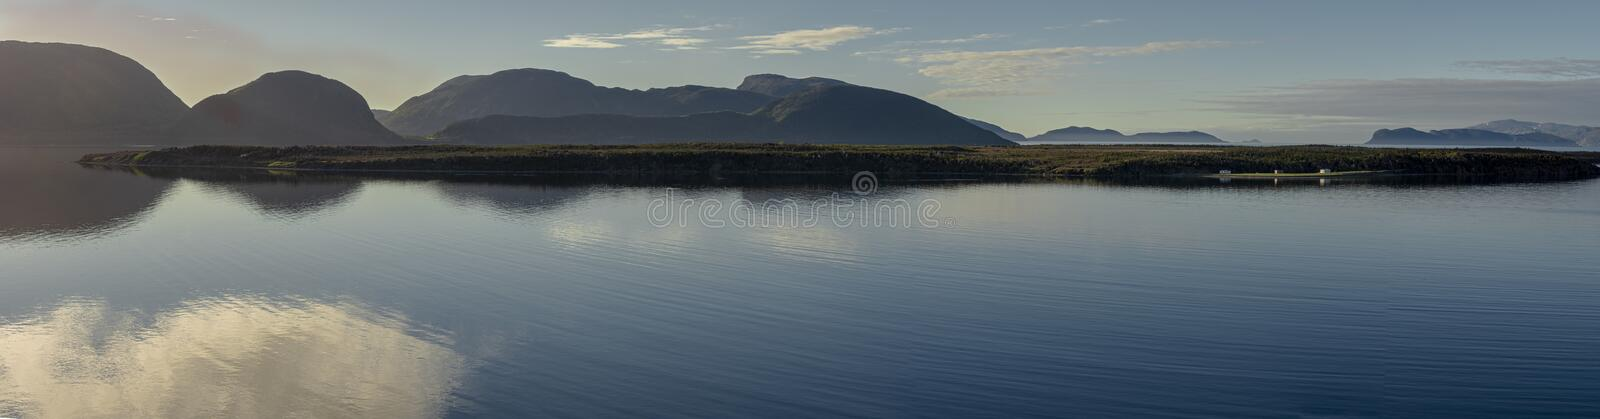 Pano from York harbour, Newfoundland royalty free stock image